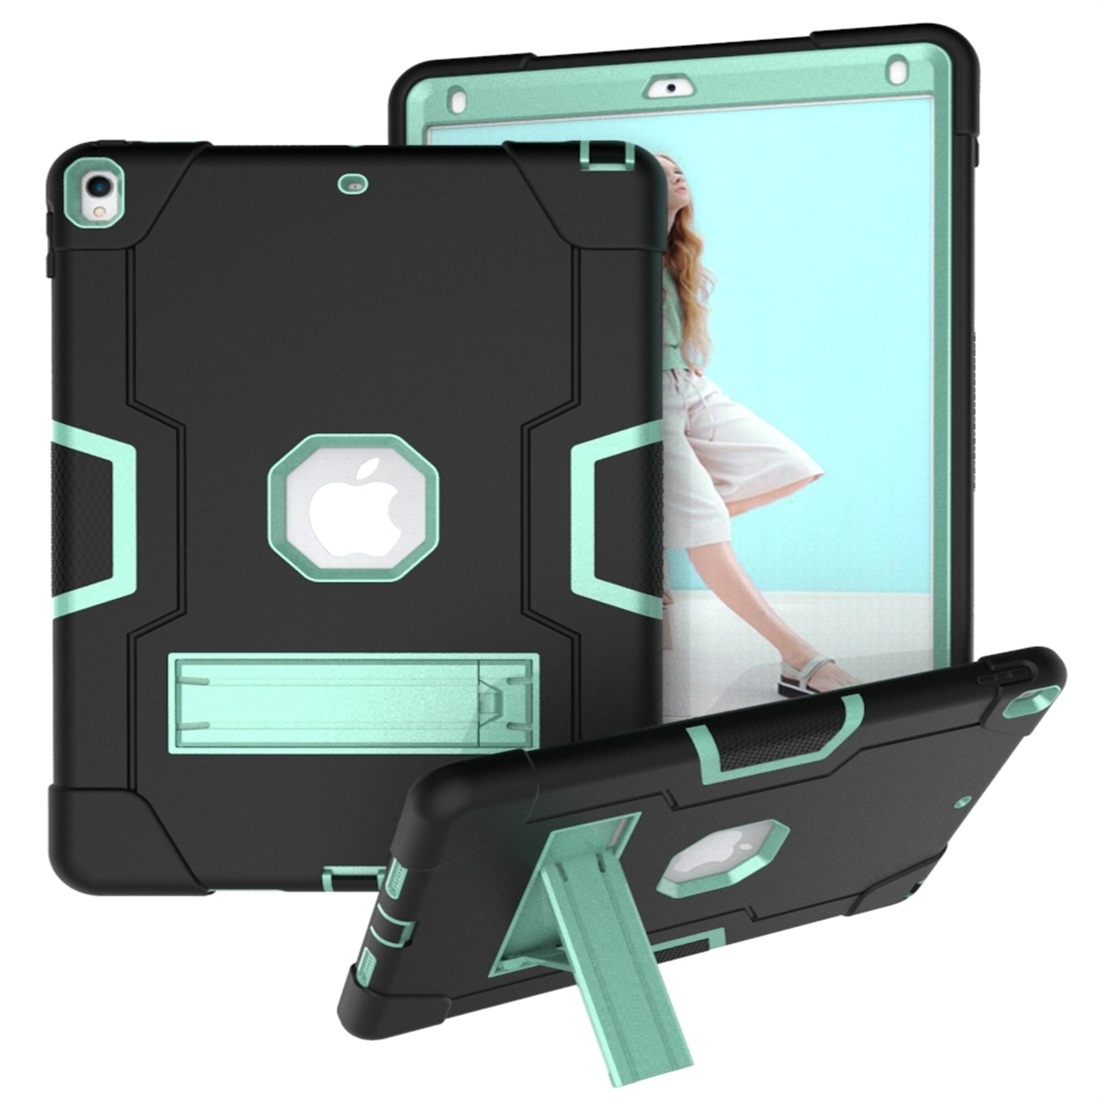 iPad 10.5 Case Contrasting Color Tough Durable Armor Case (Black/Aqua)